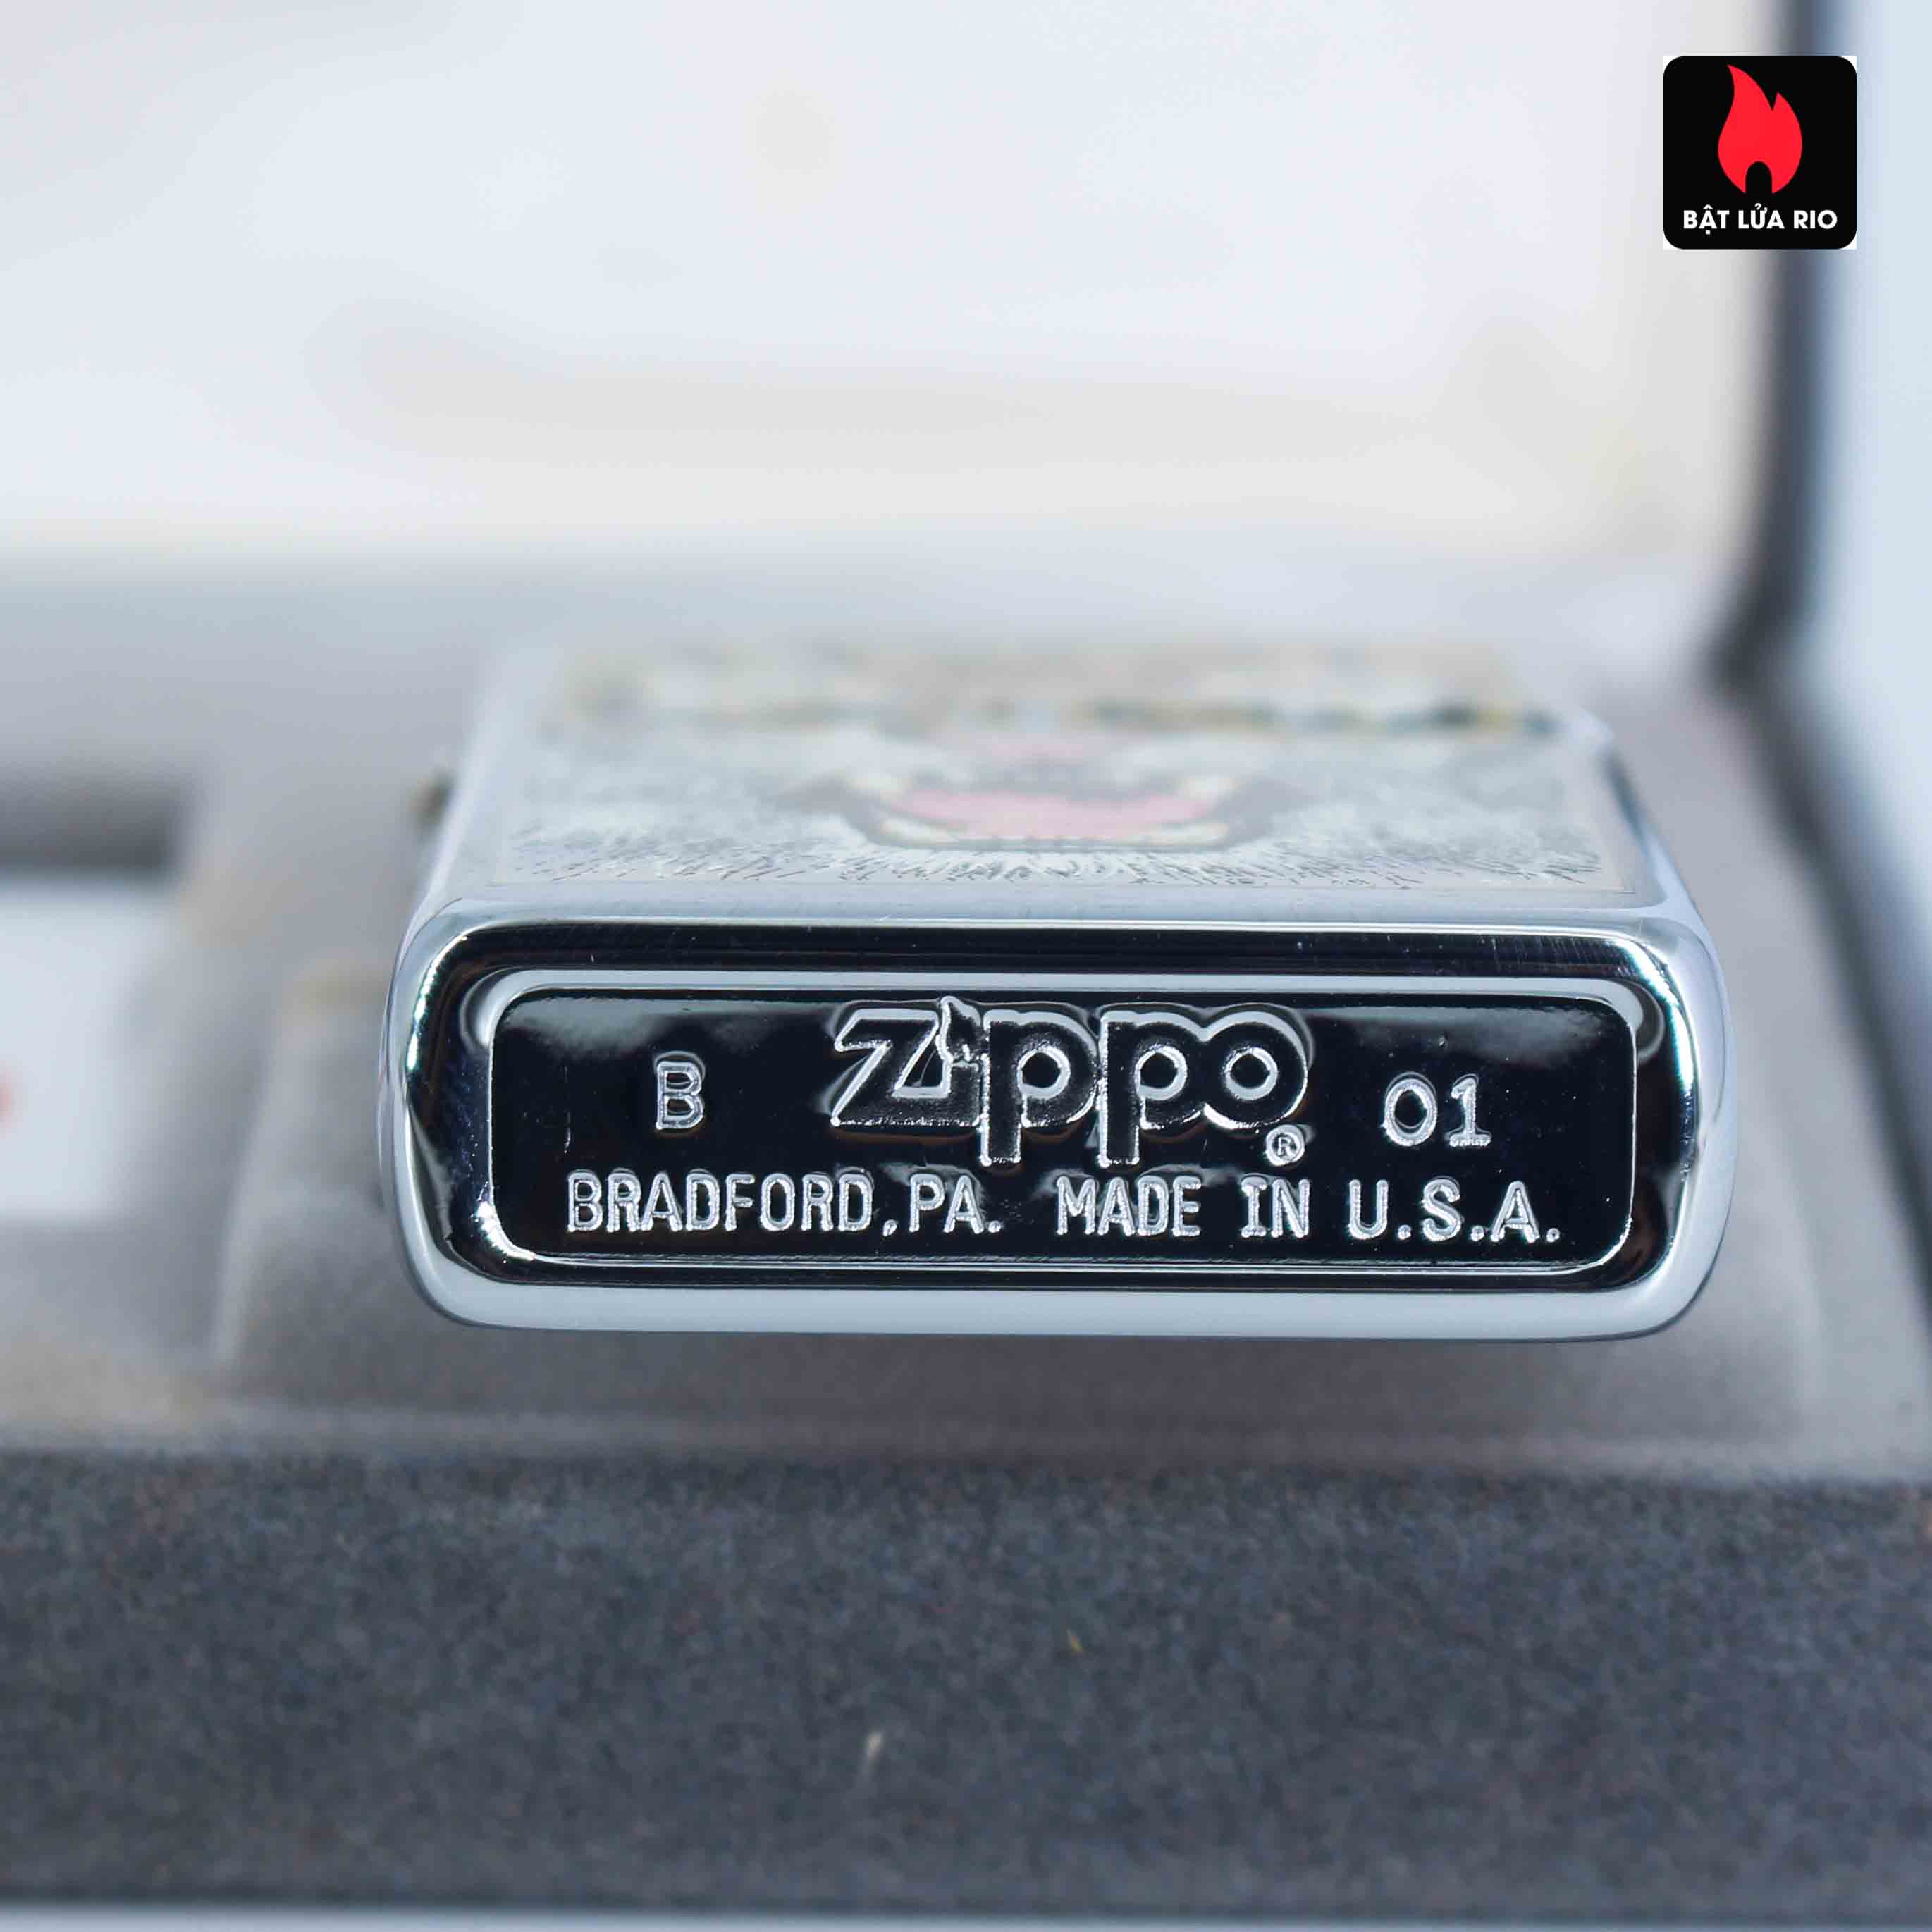 Zippo 2001 - Wild Lighters Edition - Limited Edition /1000 5